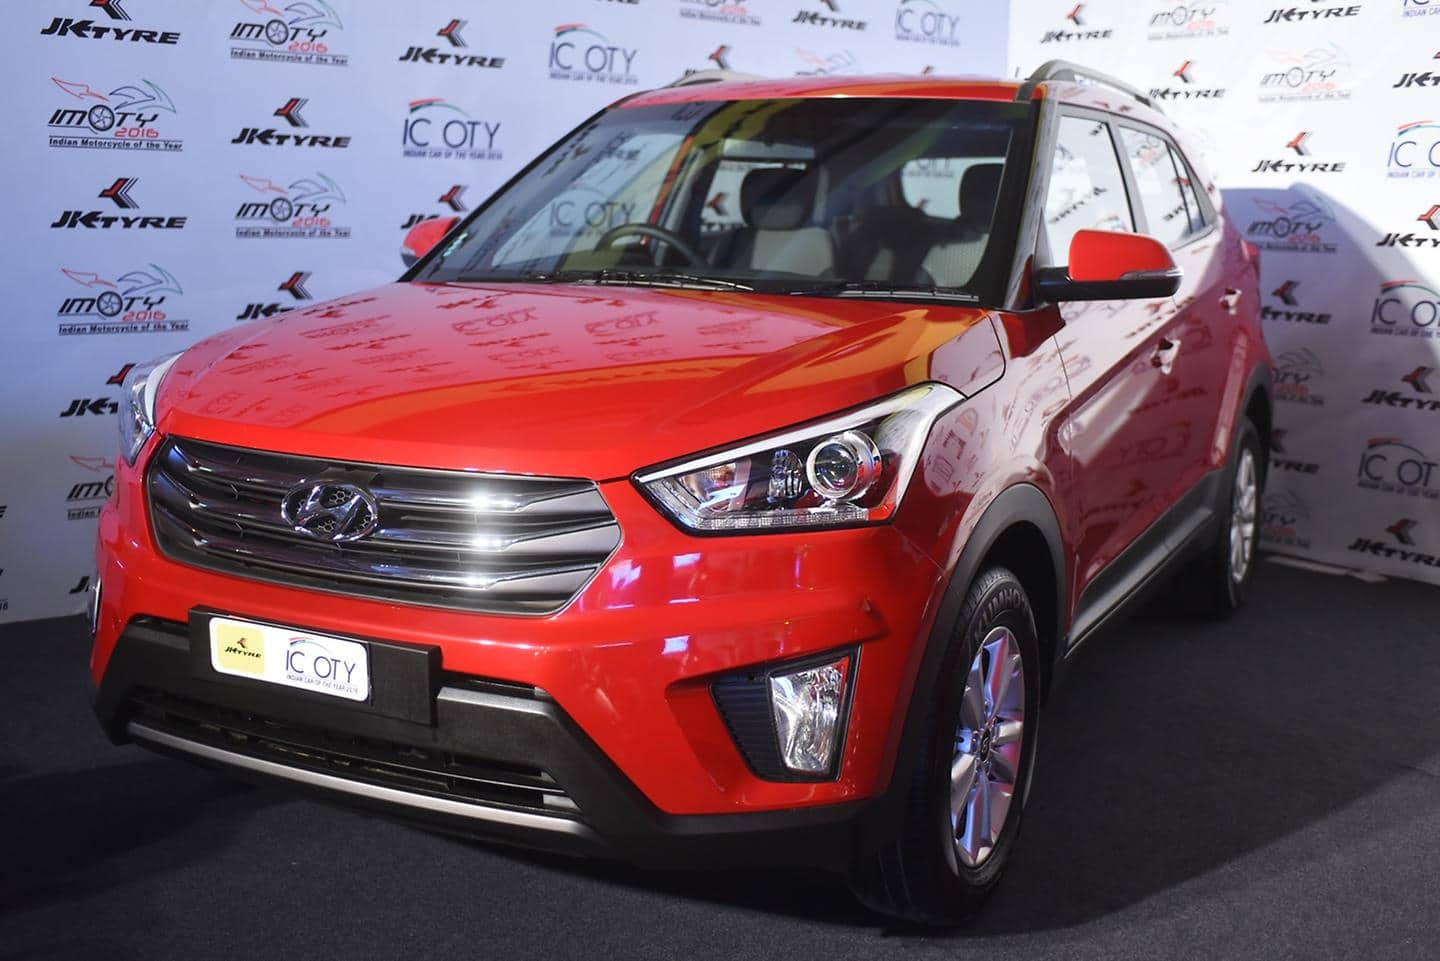 Hyundai Motor's CRETA wins Indian Car of the Year 2016 (ICOTY) 3